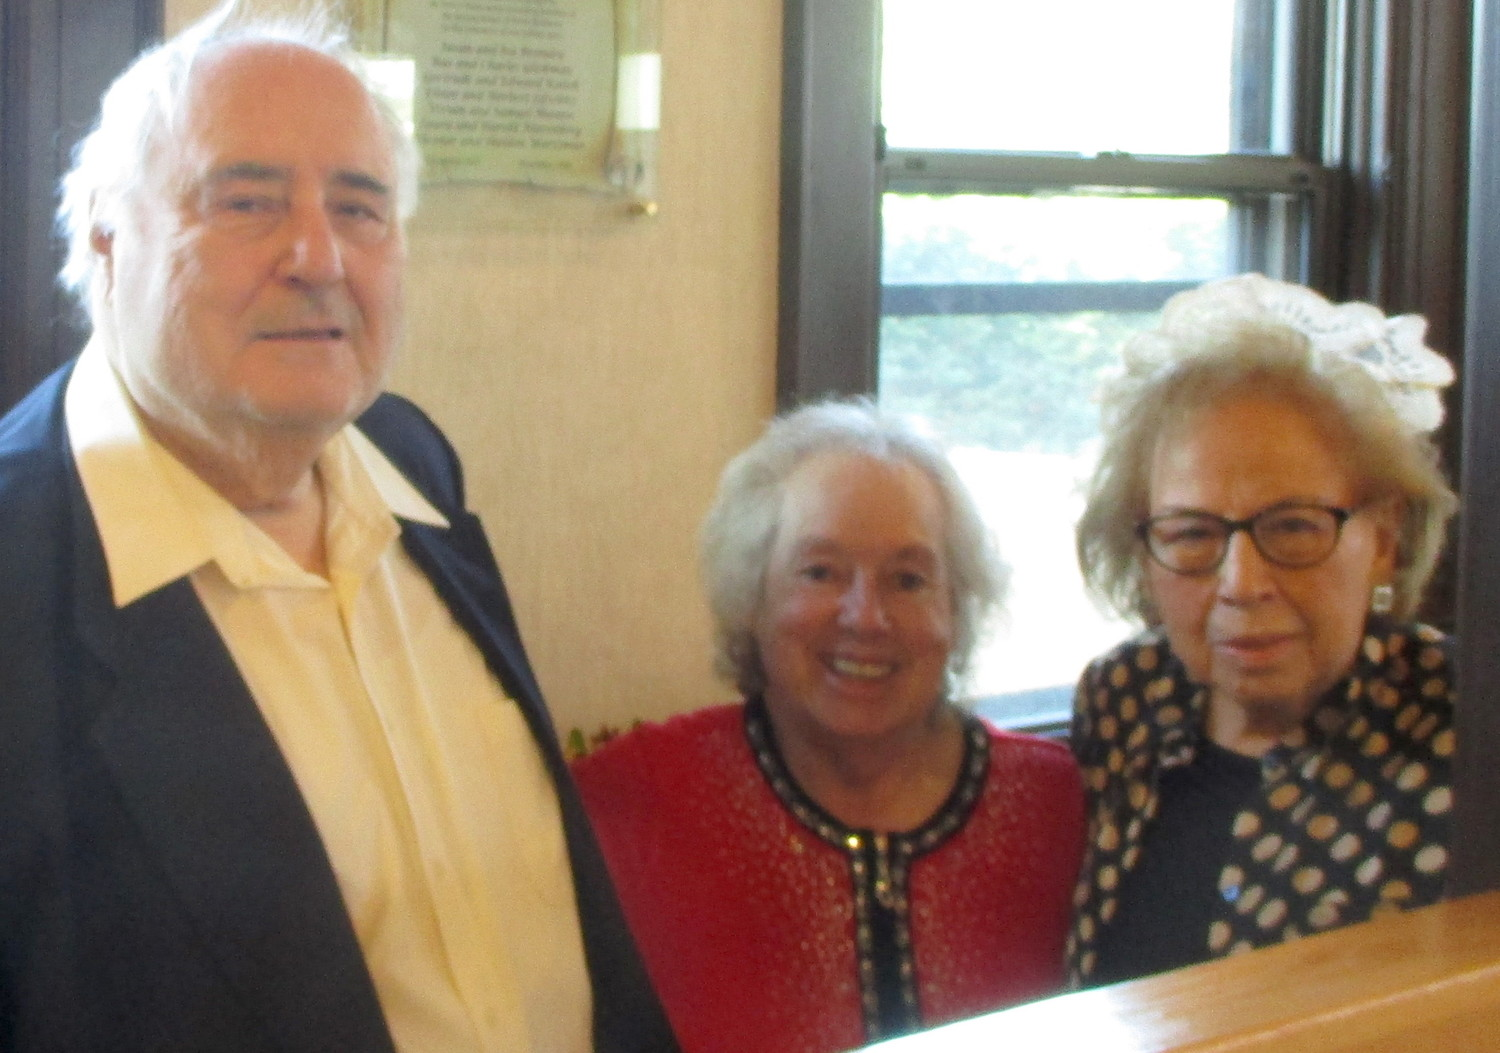 Young Israel of North Bellmore founding members Shelly Wortzman, Elinor Wortzman and Laura Niereenberg.